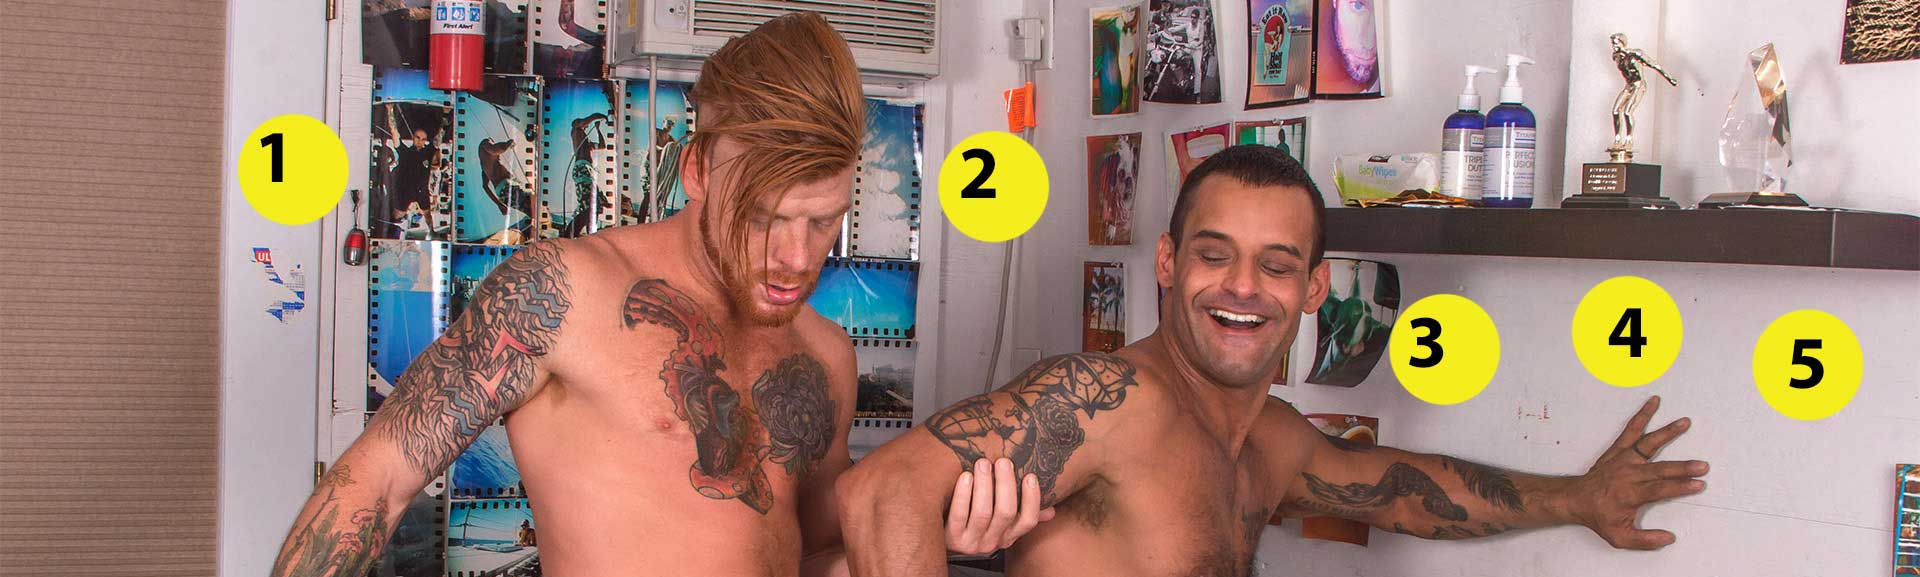 19 Things You Missed In The David Benjamin/Bennet Anthony Scene in Silverlake